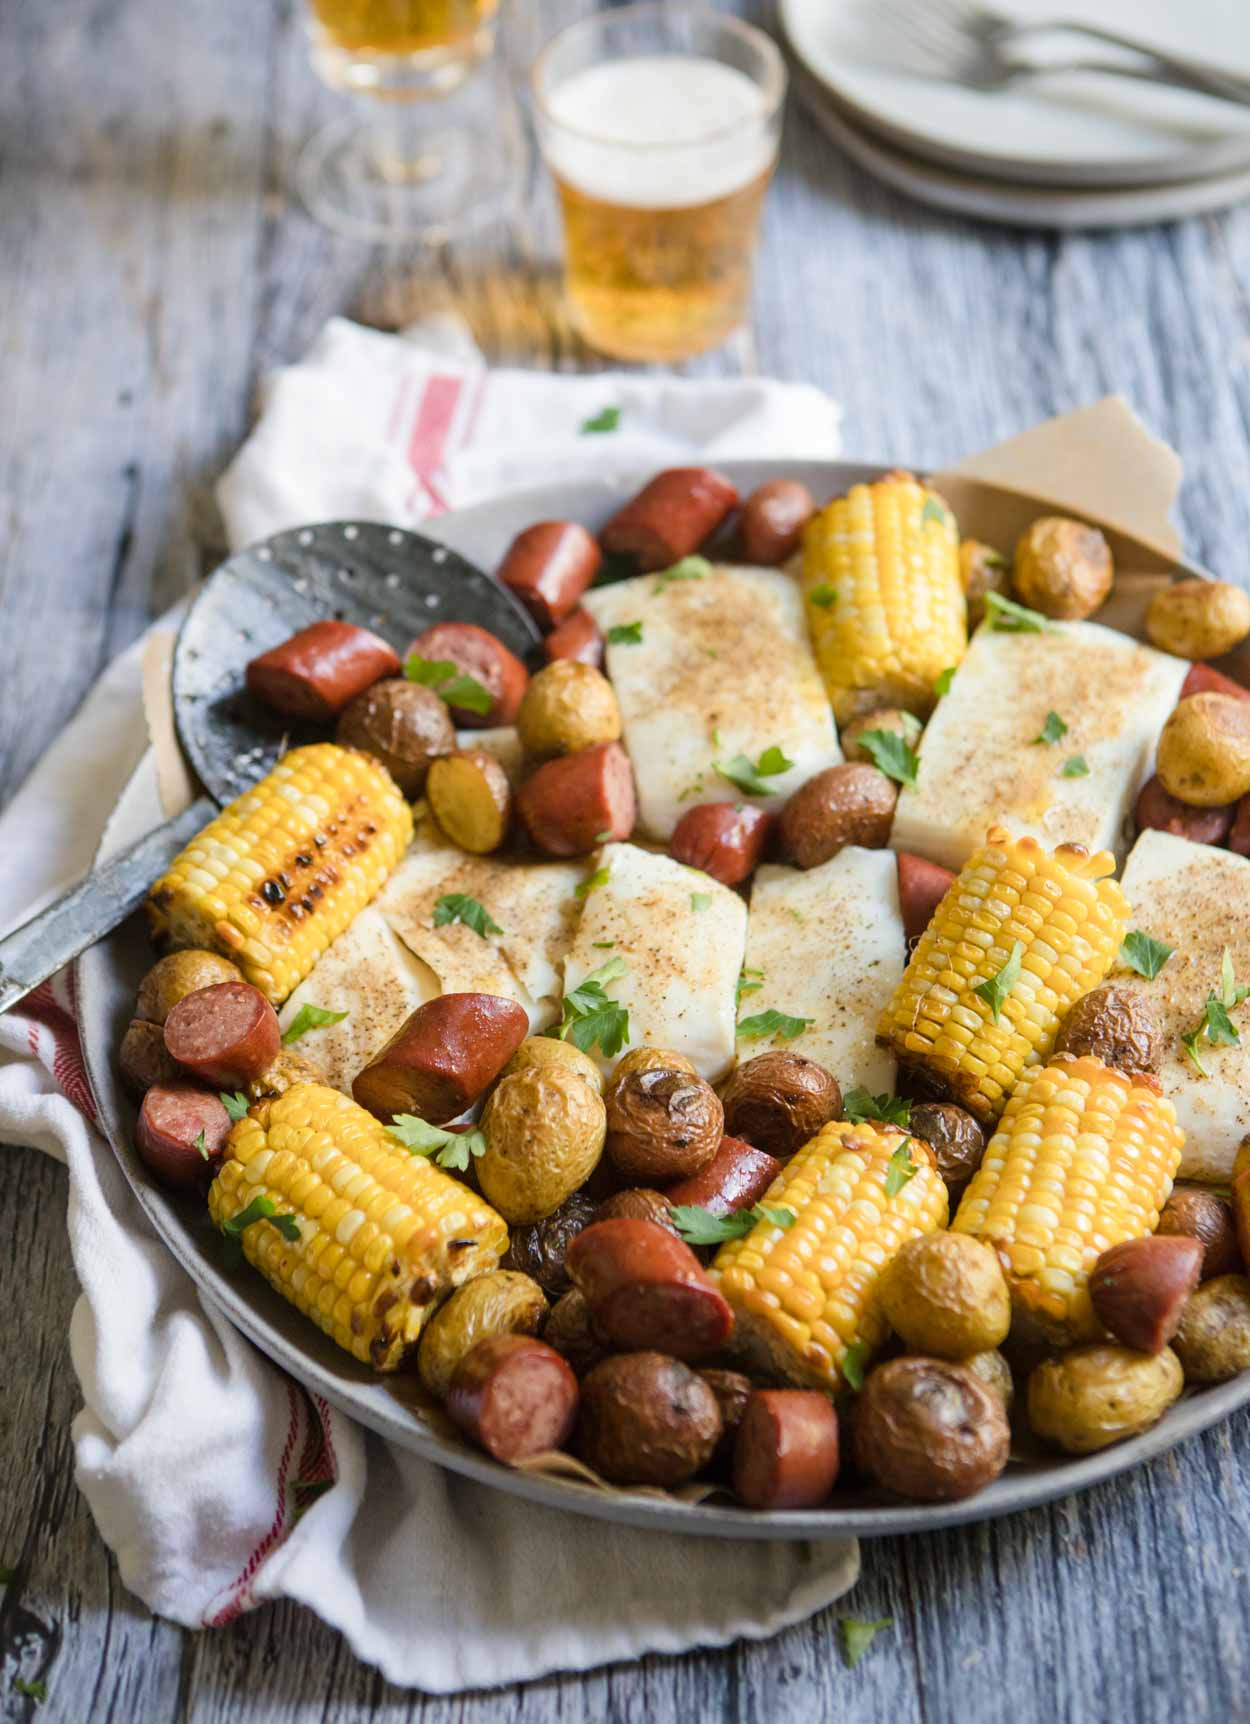 round platter with sausage, halibut, corn and potatoes set against a gray backdrop